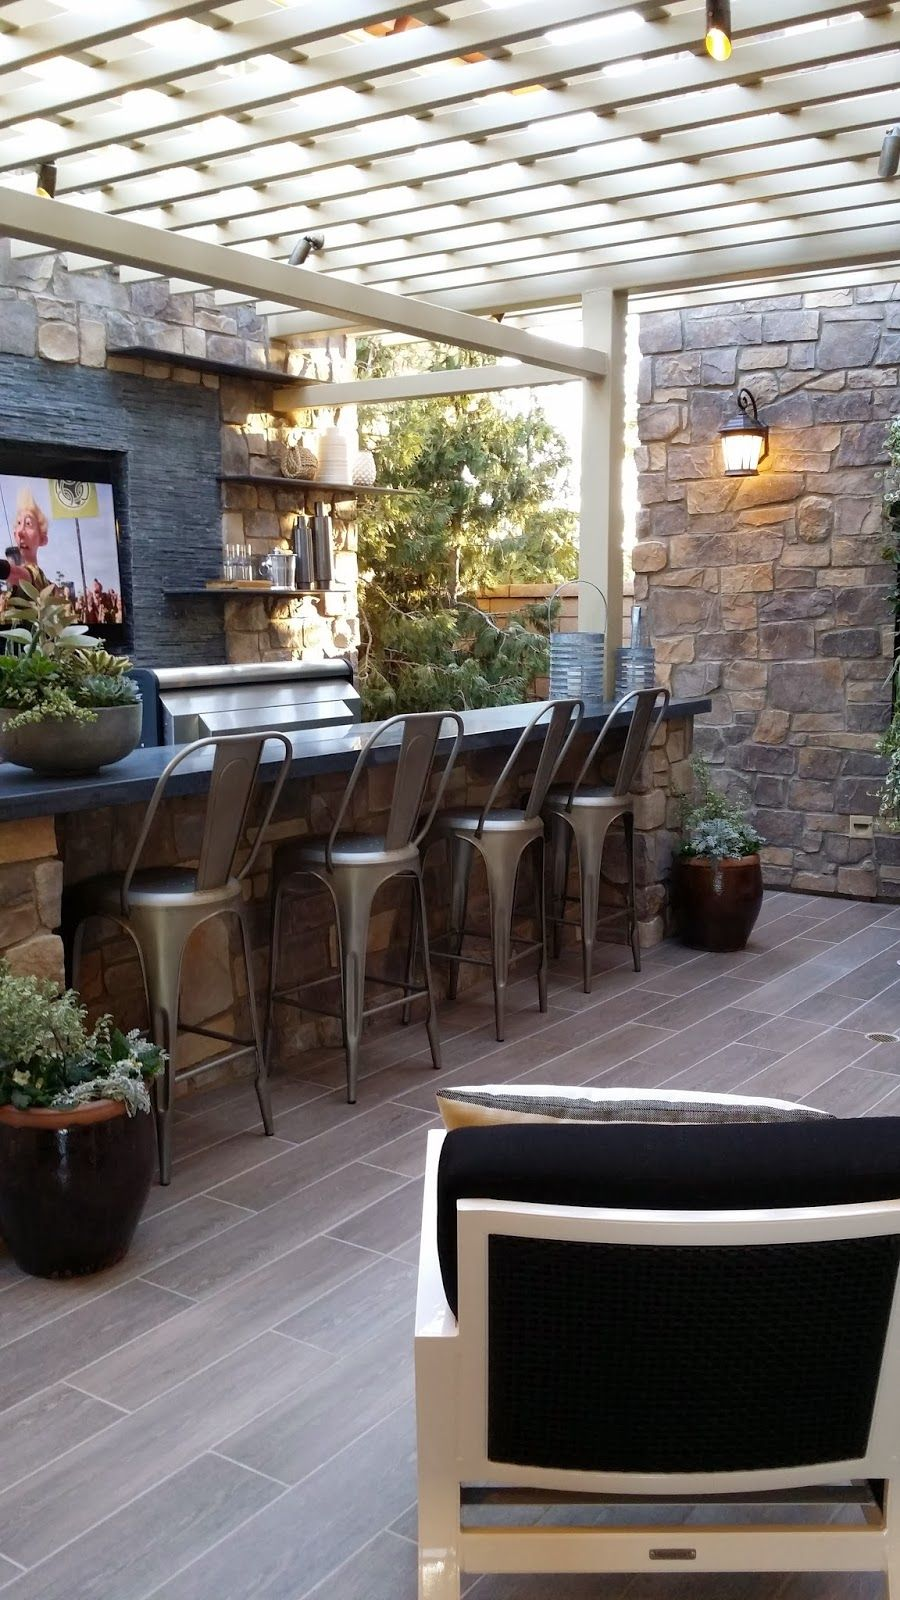 Perfect 20+ Creative Patio / Outdoor Bar Ideas You Must Try At Your Backyard